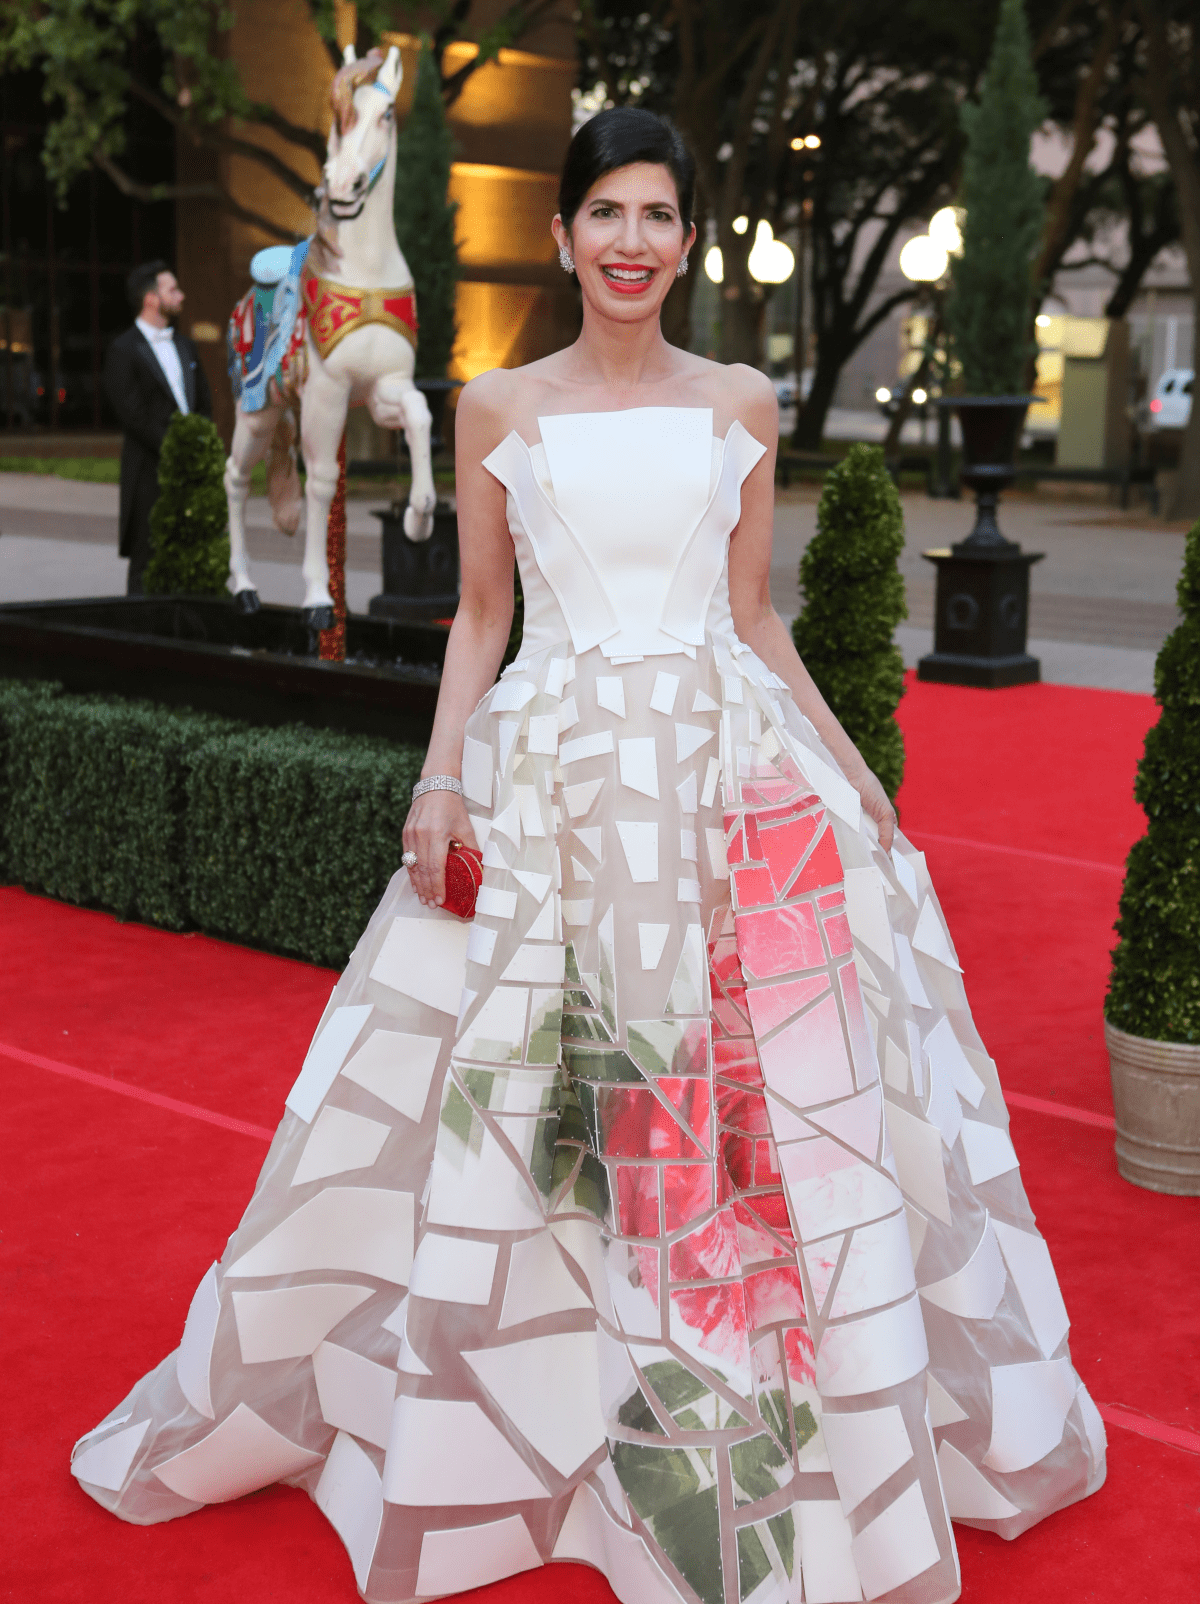 Houston, Opera Ball Gowns, April 2016, Kelli Cohen Fein in Carolina Herrera.